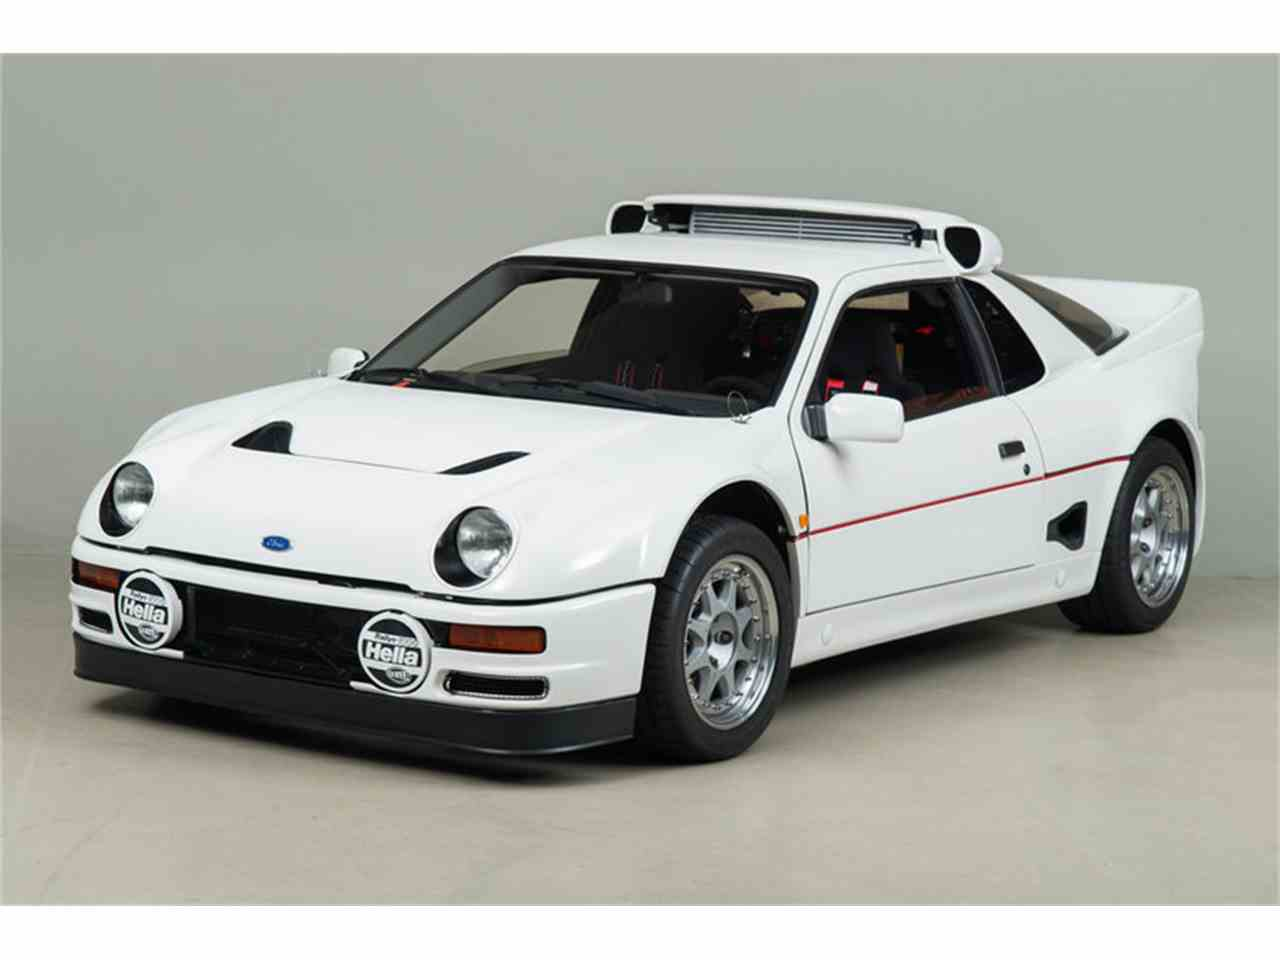 1986 ford rs200 evo for sale cc 955641. Black Bedroom Furniture Sets. Home Design Ideas